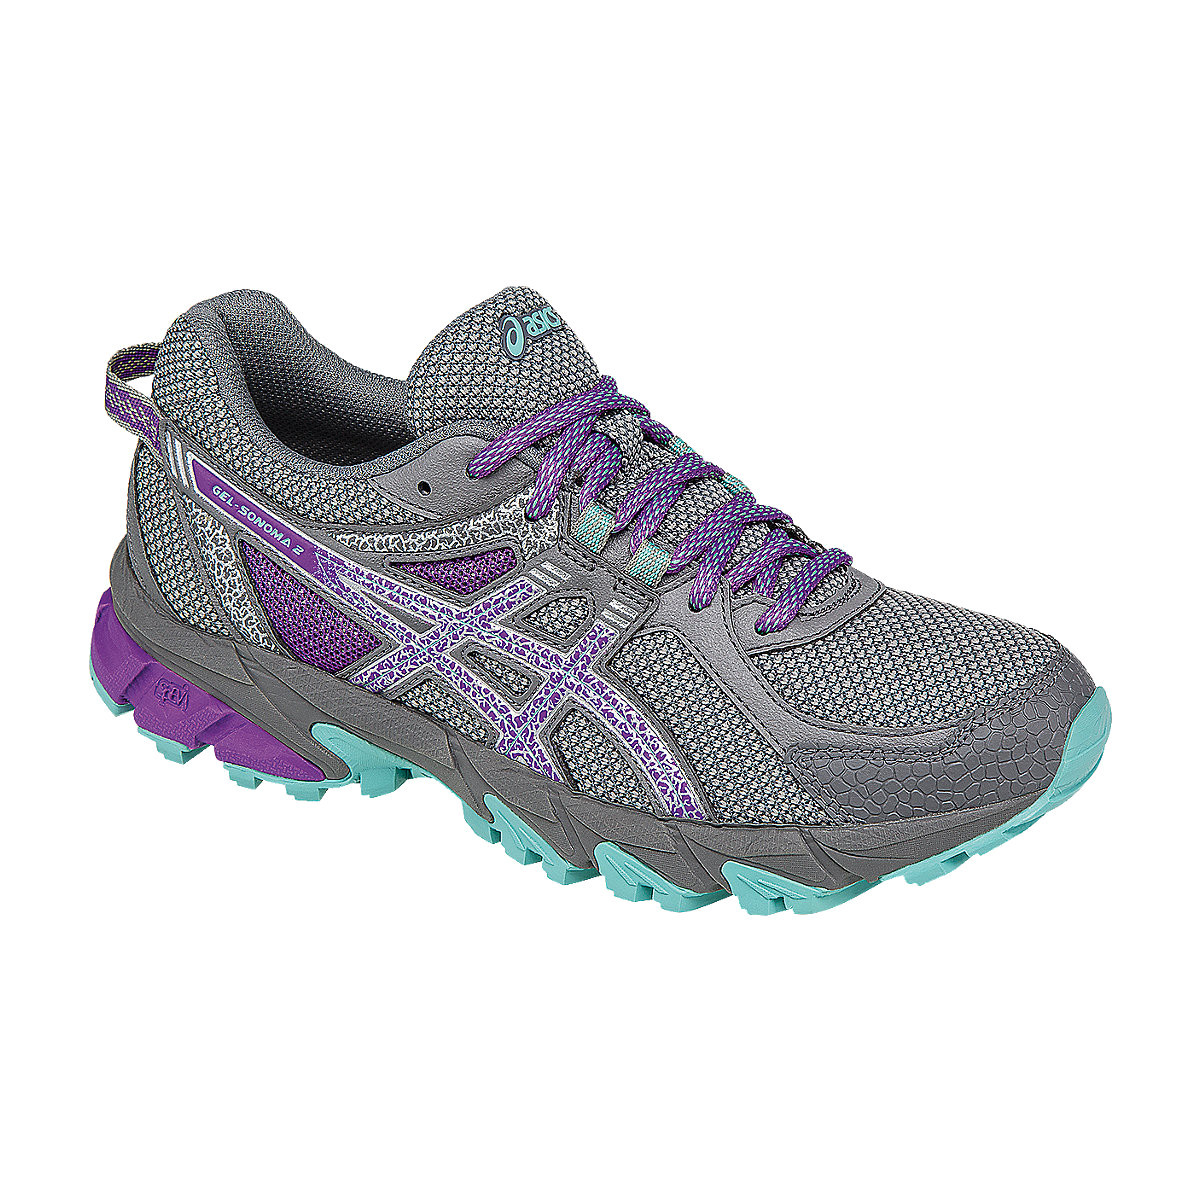 ... Asics Women Shoes Gel-Sonoma 2 (D) color Taupe/Orchid/Pool Blue  T685N9633. Image 1